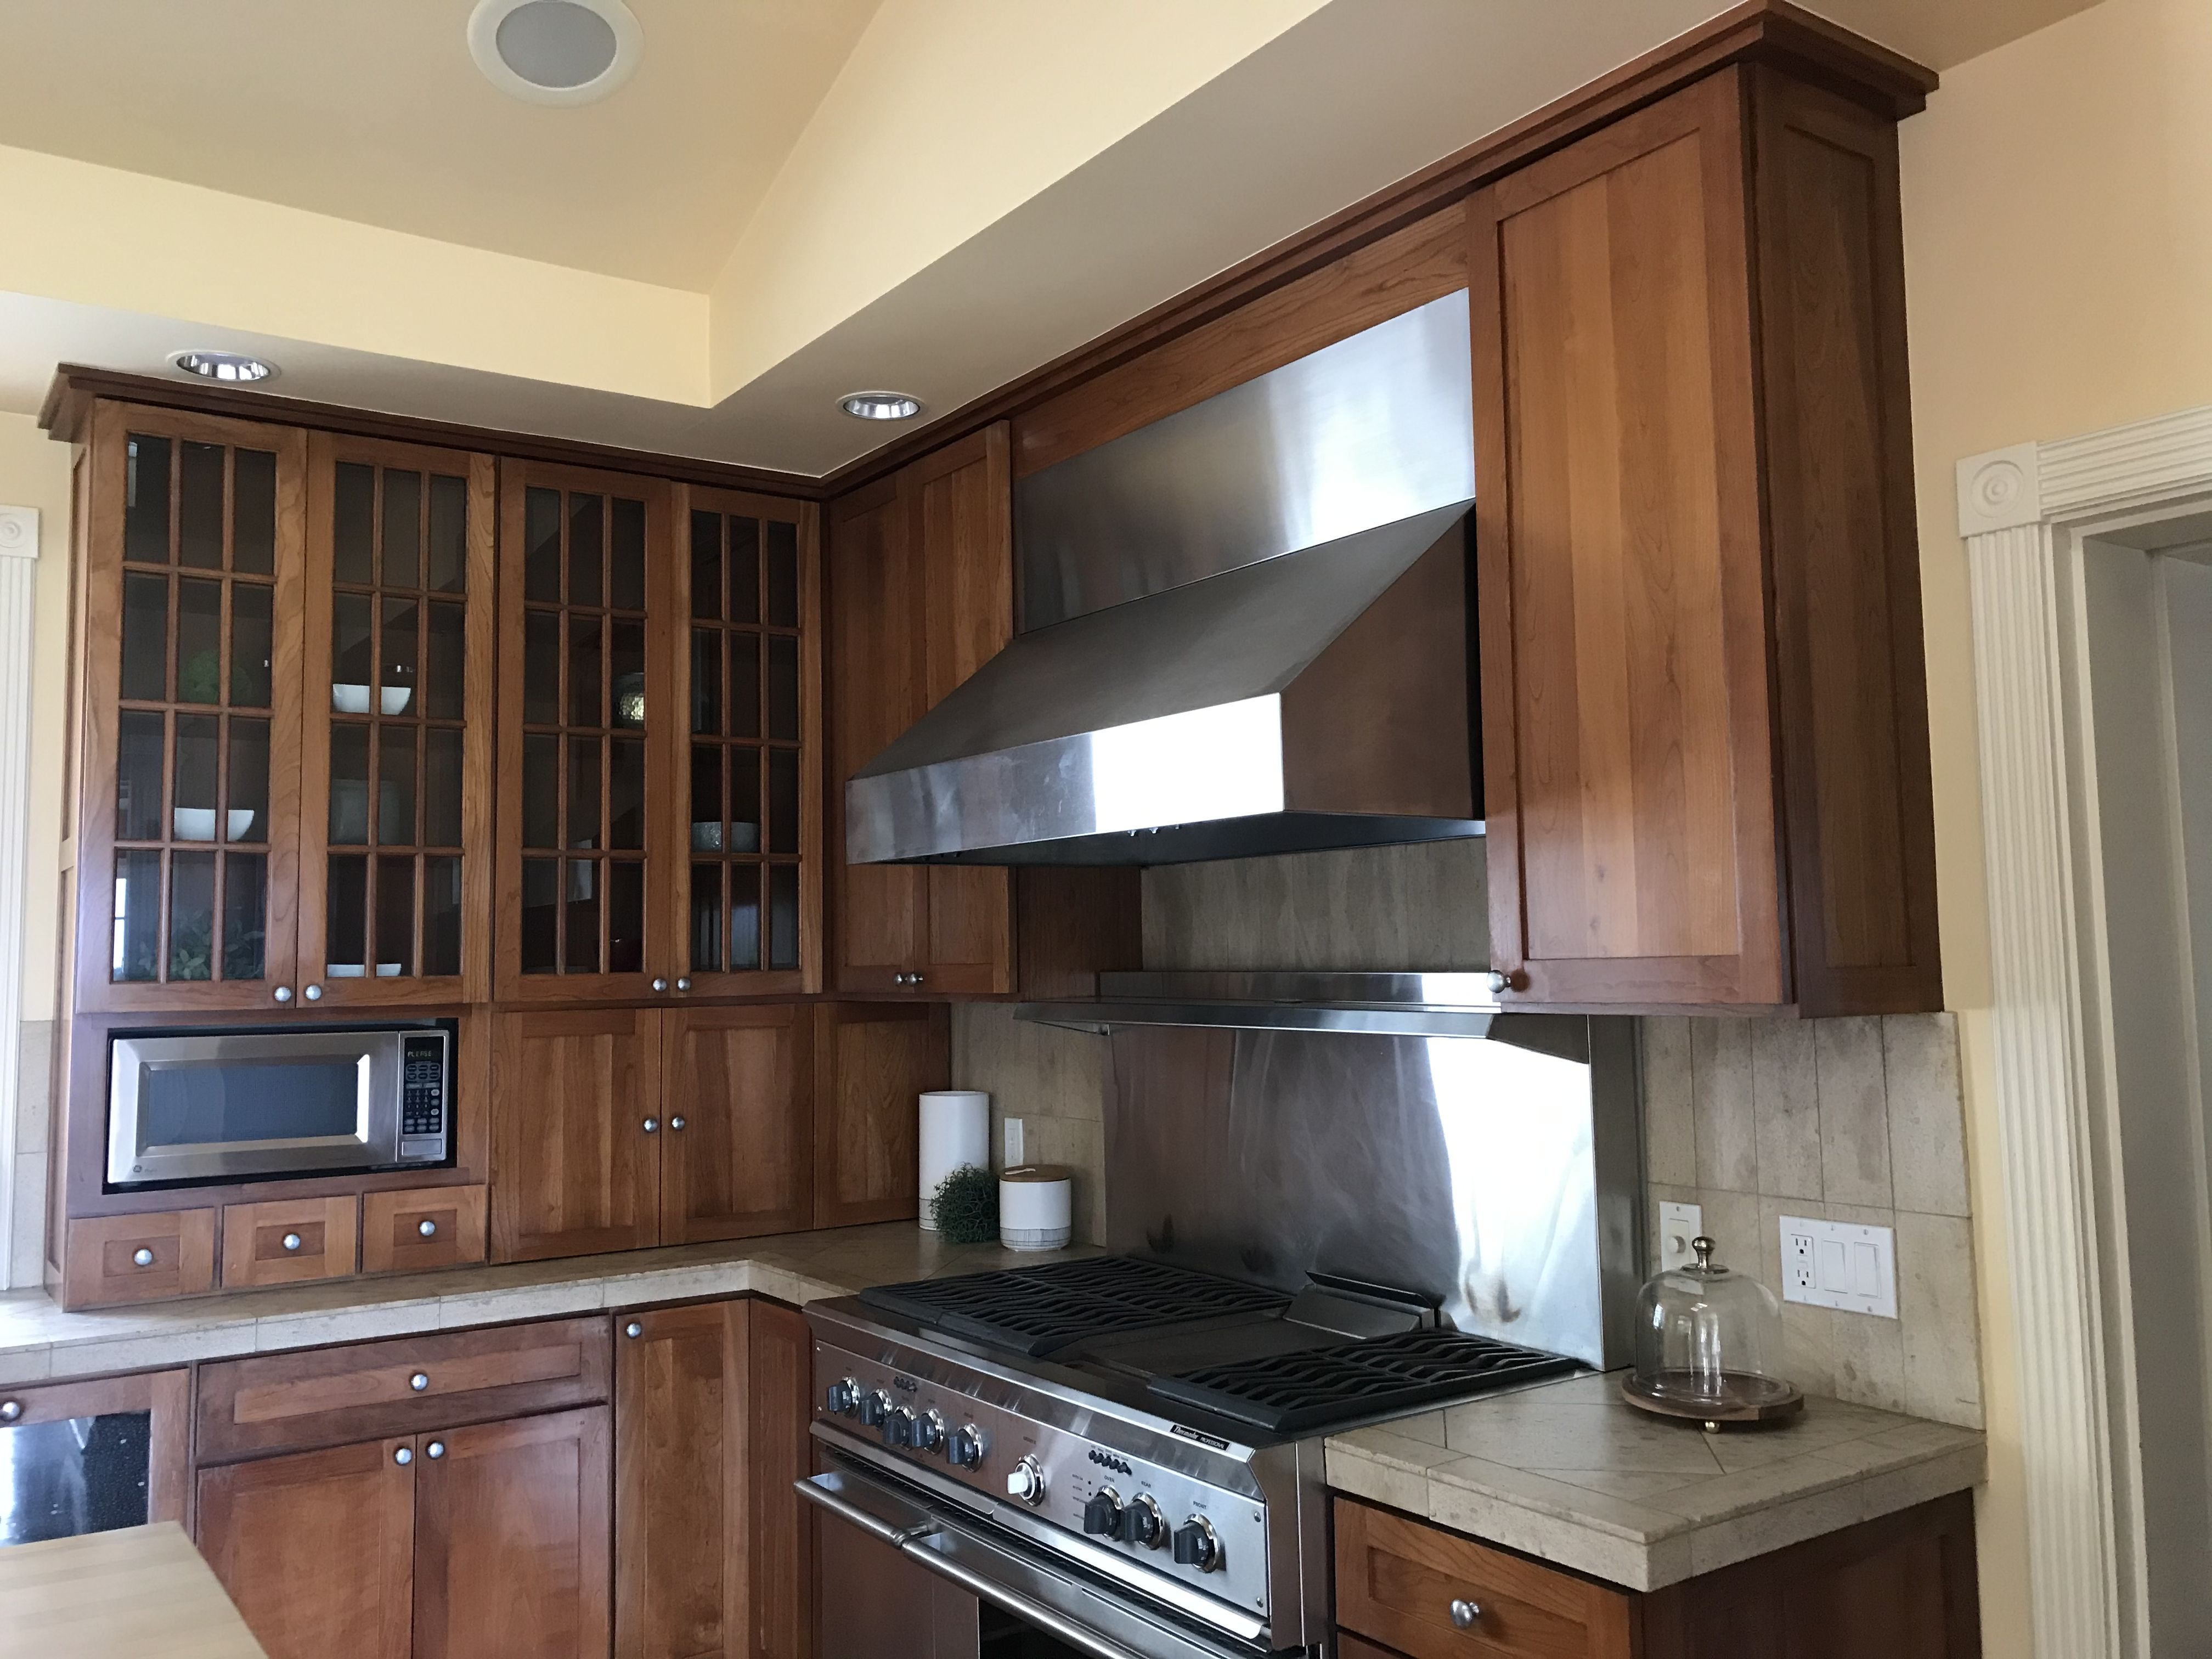 Pin By Anew On Santa Barbara In 2020 Home Home Decor Kitchen Cabinets